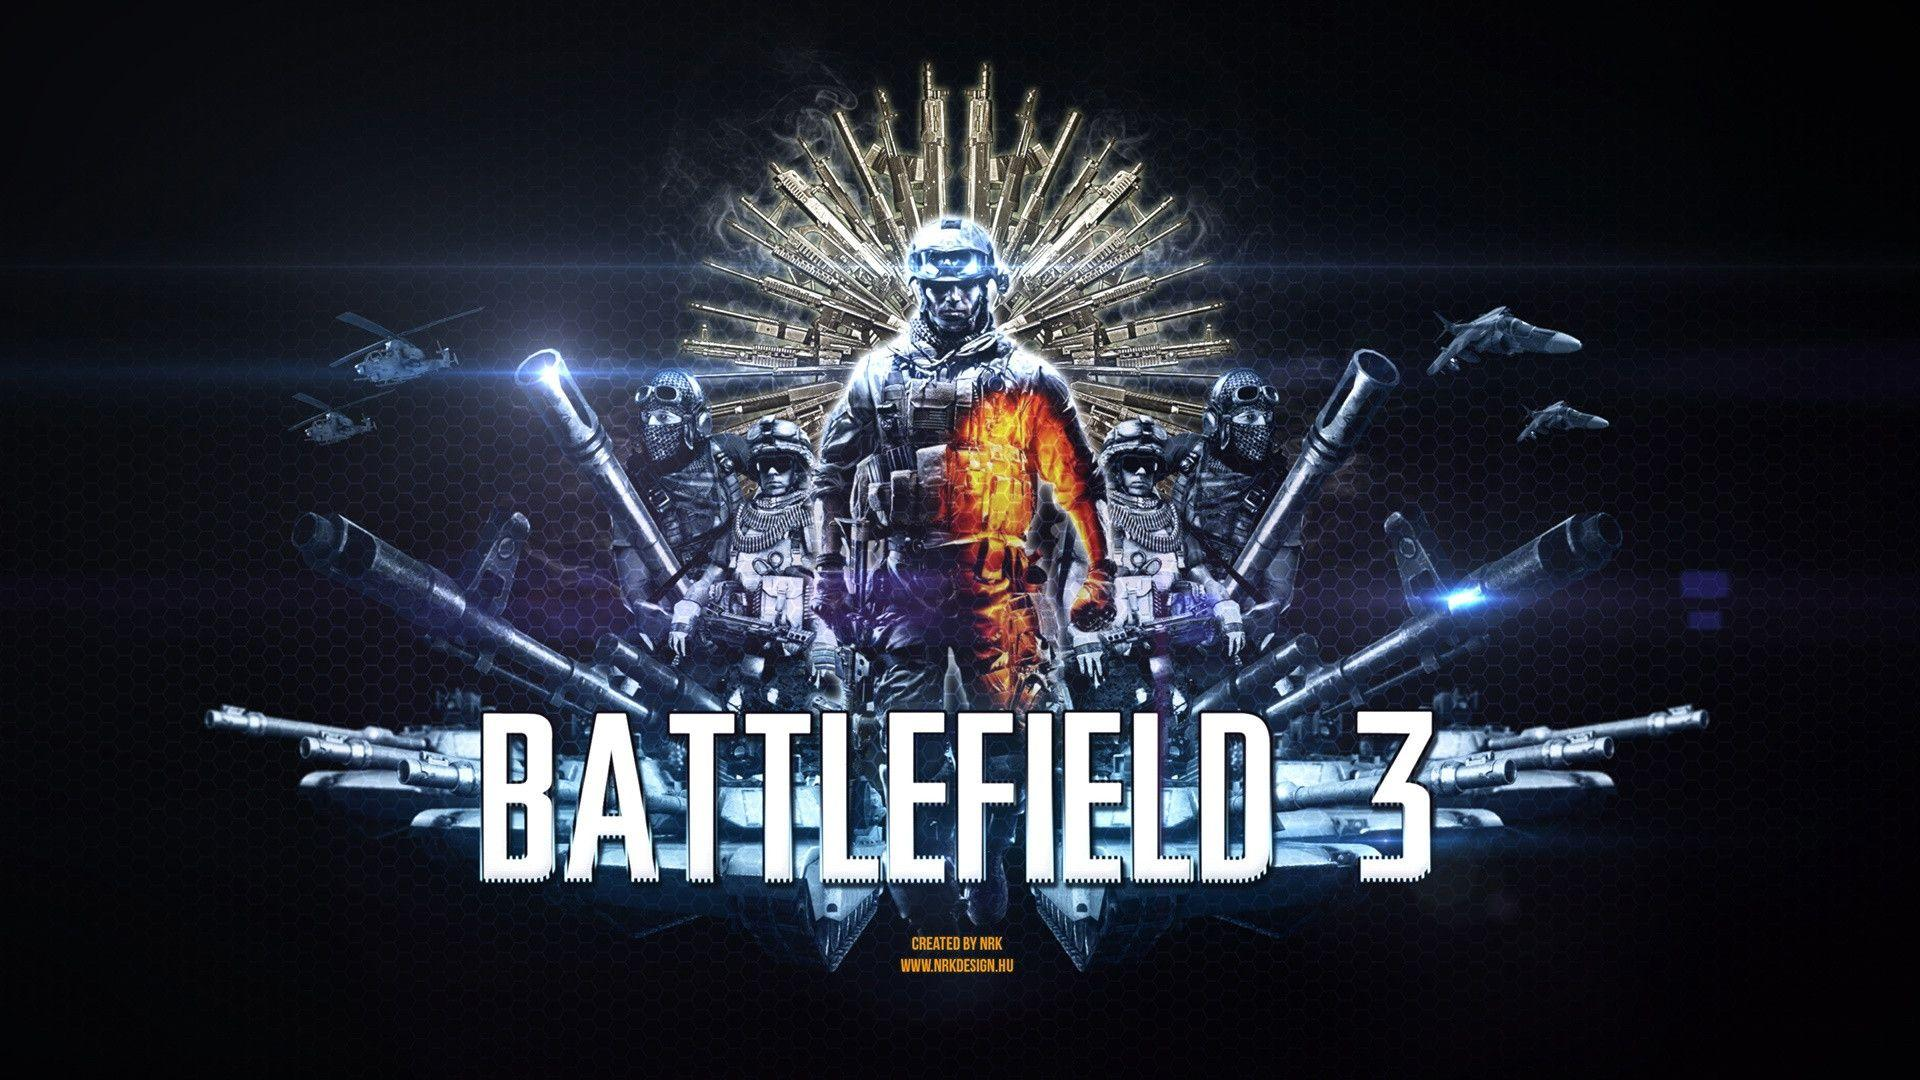 battlefield 3 pc wallpapers - photo #37